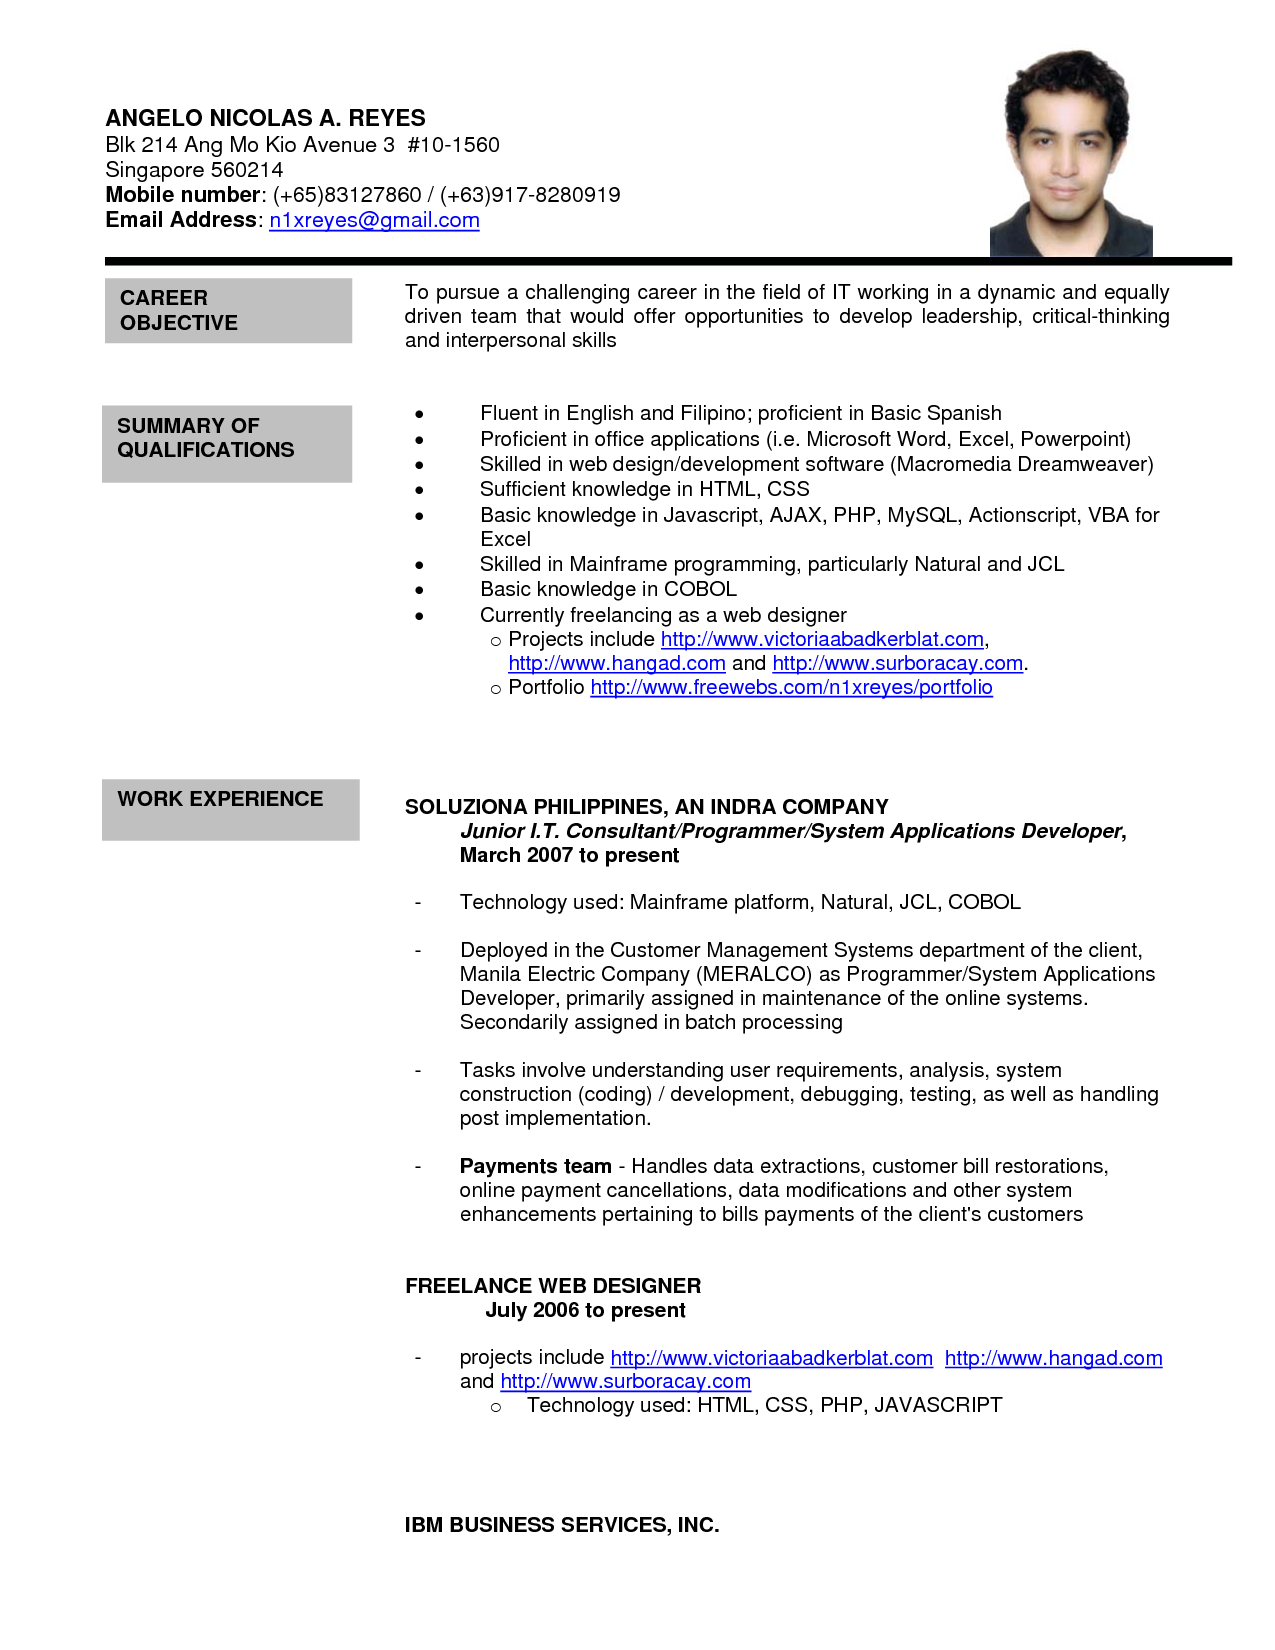 Best Resume Template To Use Formal Letter Sample Sample Resume Format Best Template Character